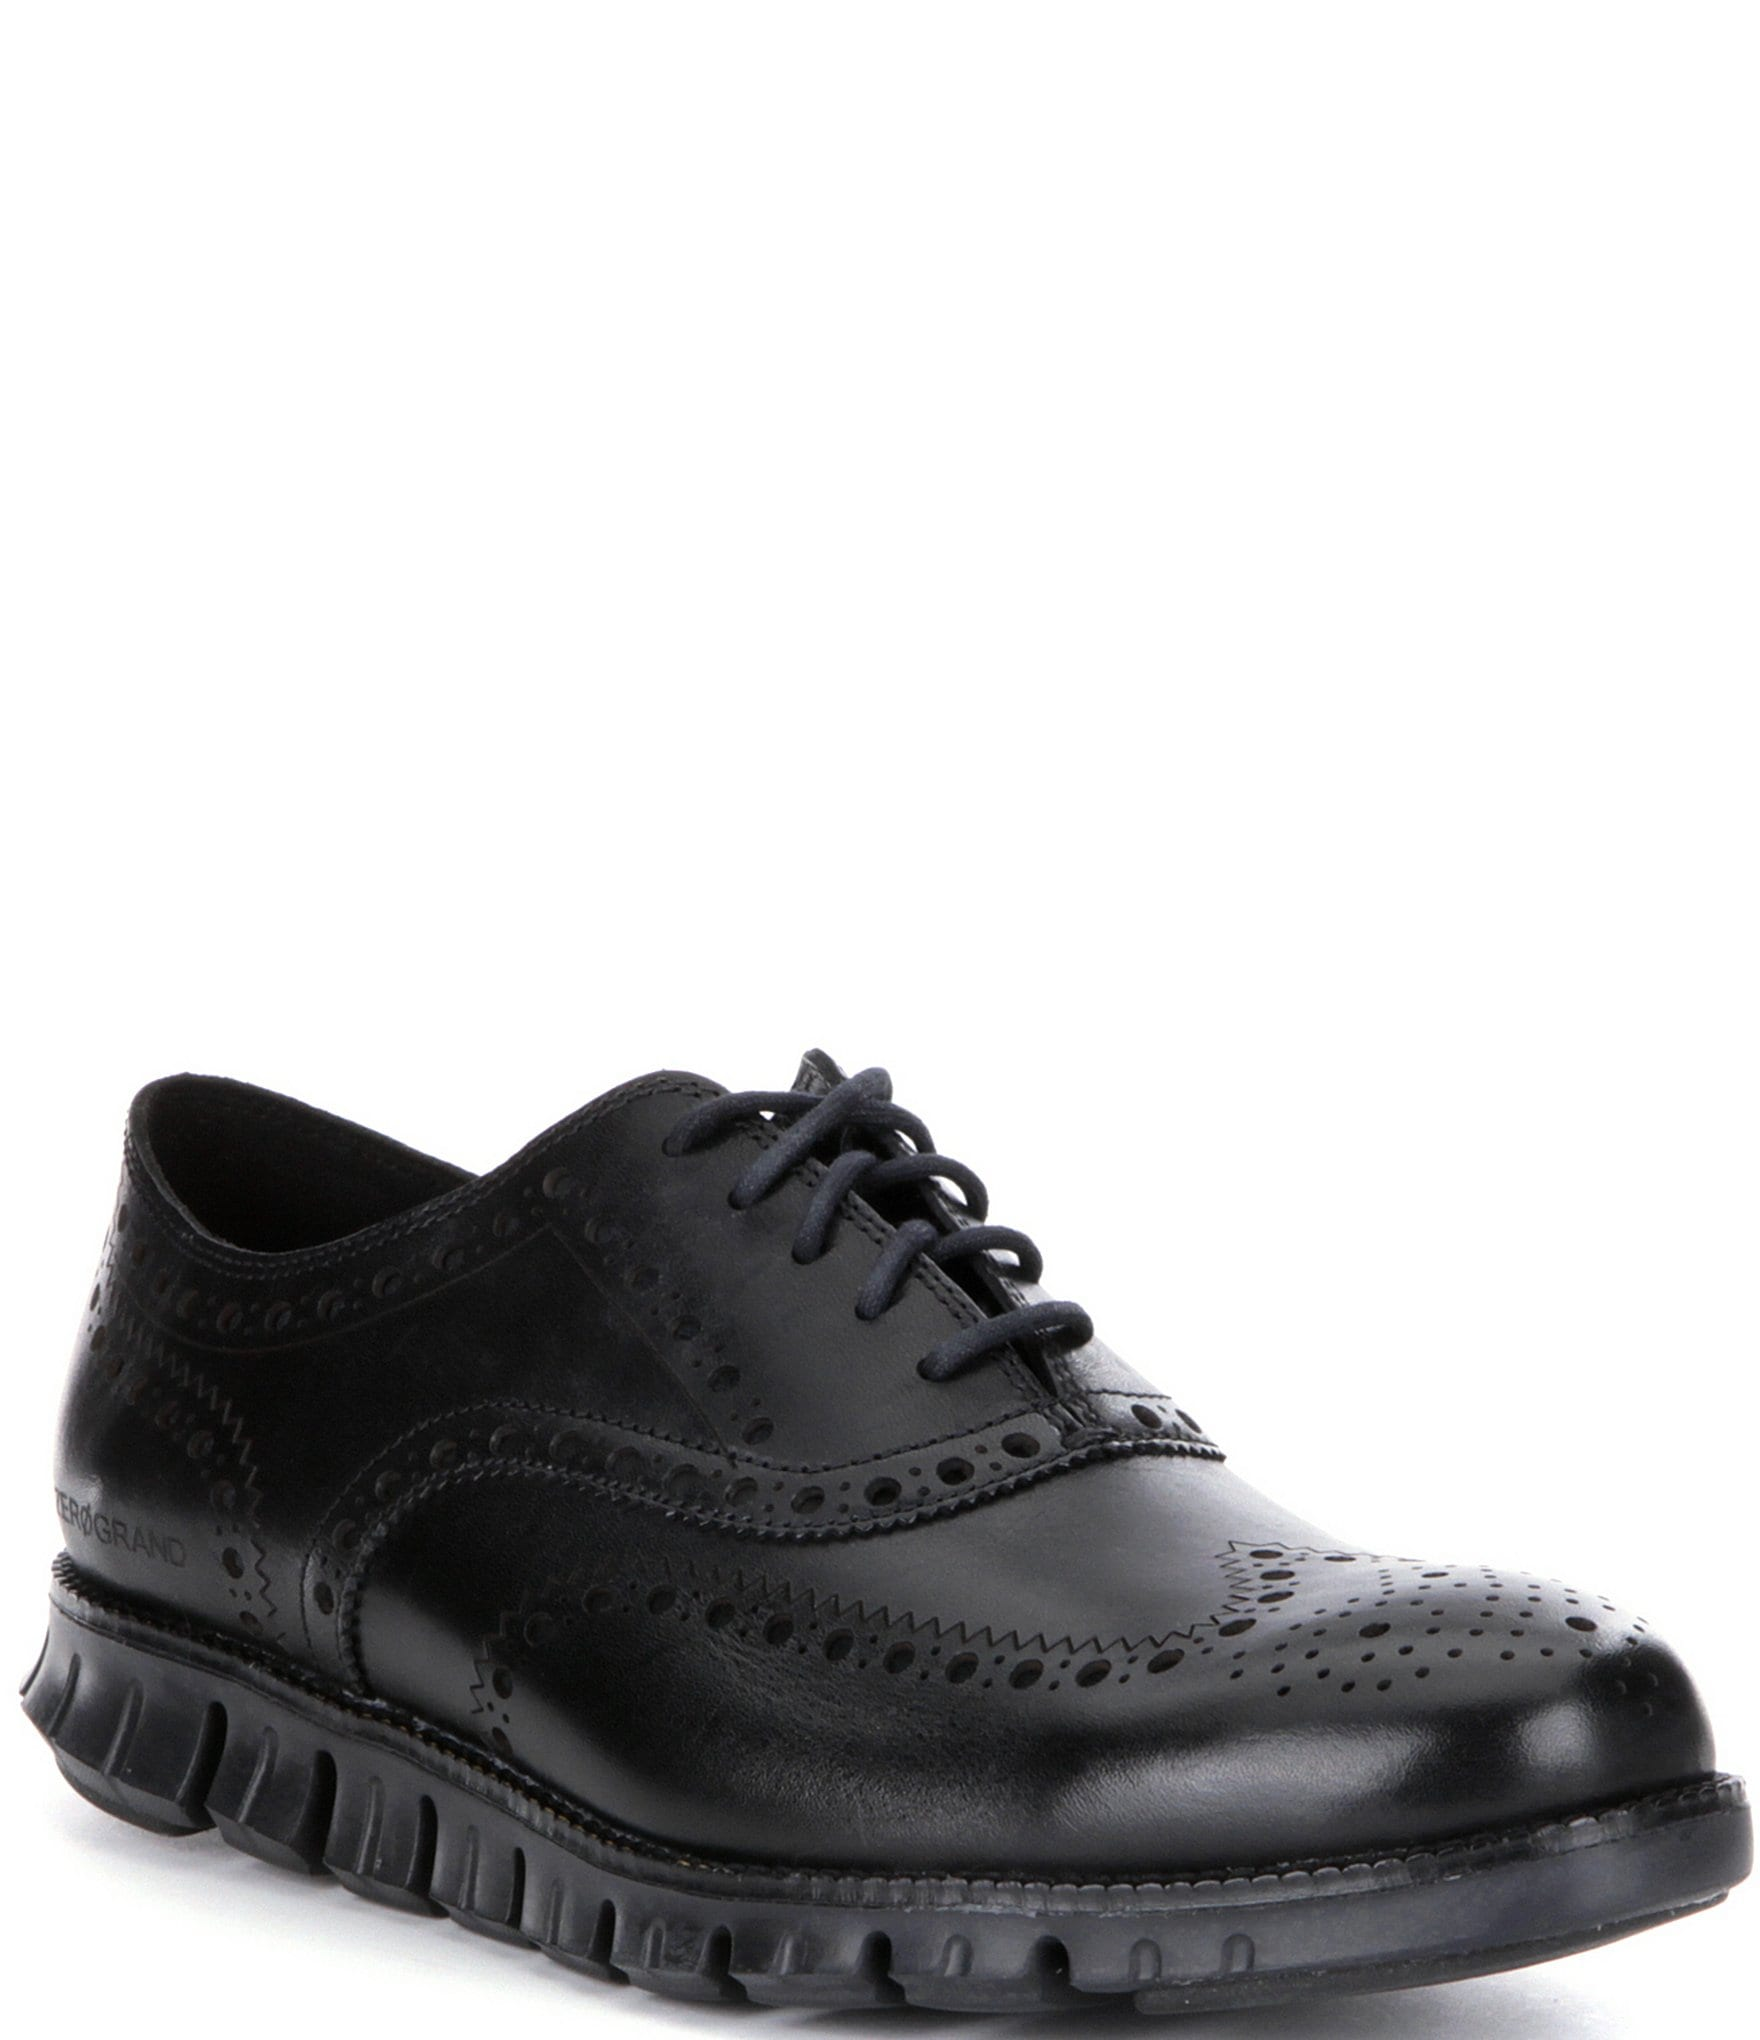 6bd77f814443b1 Men's Shoes | Dillard's